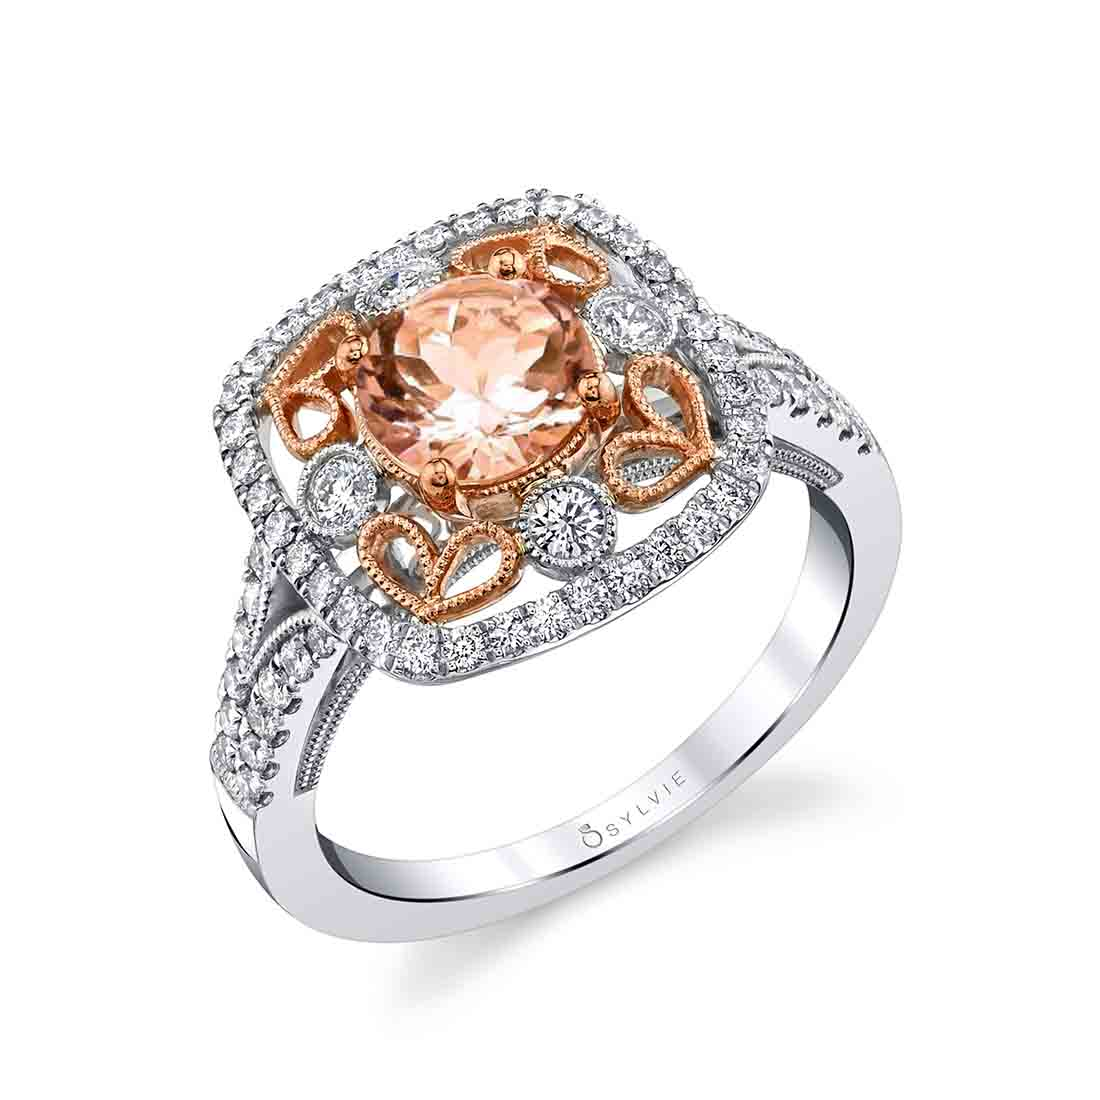 Special Edition Vintage Engagement Ring